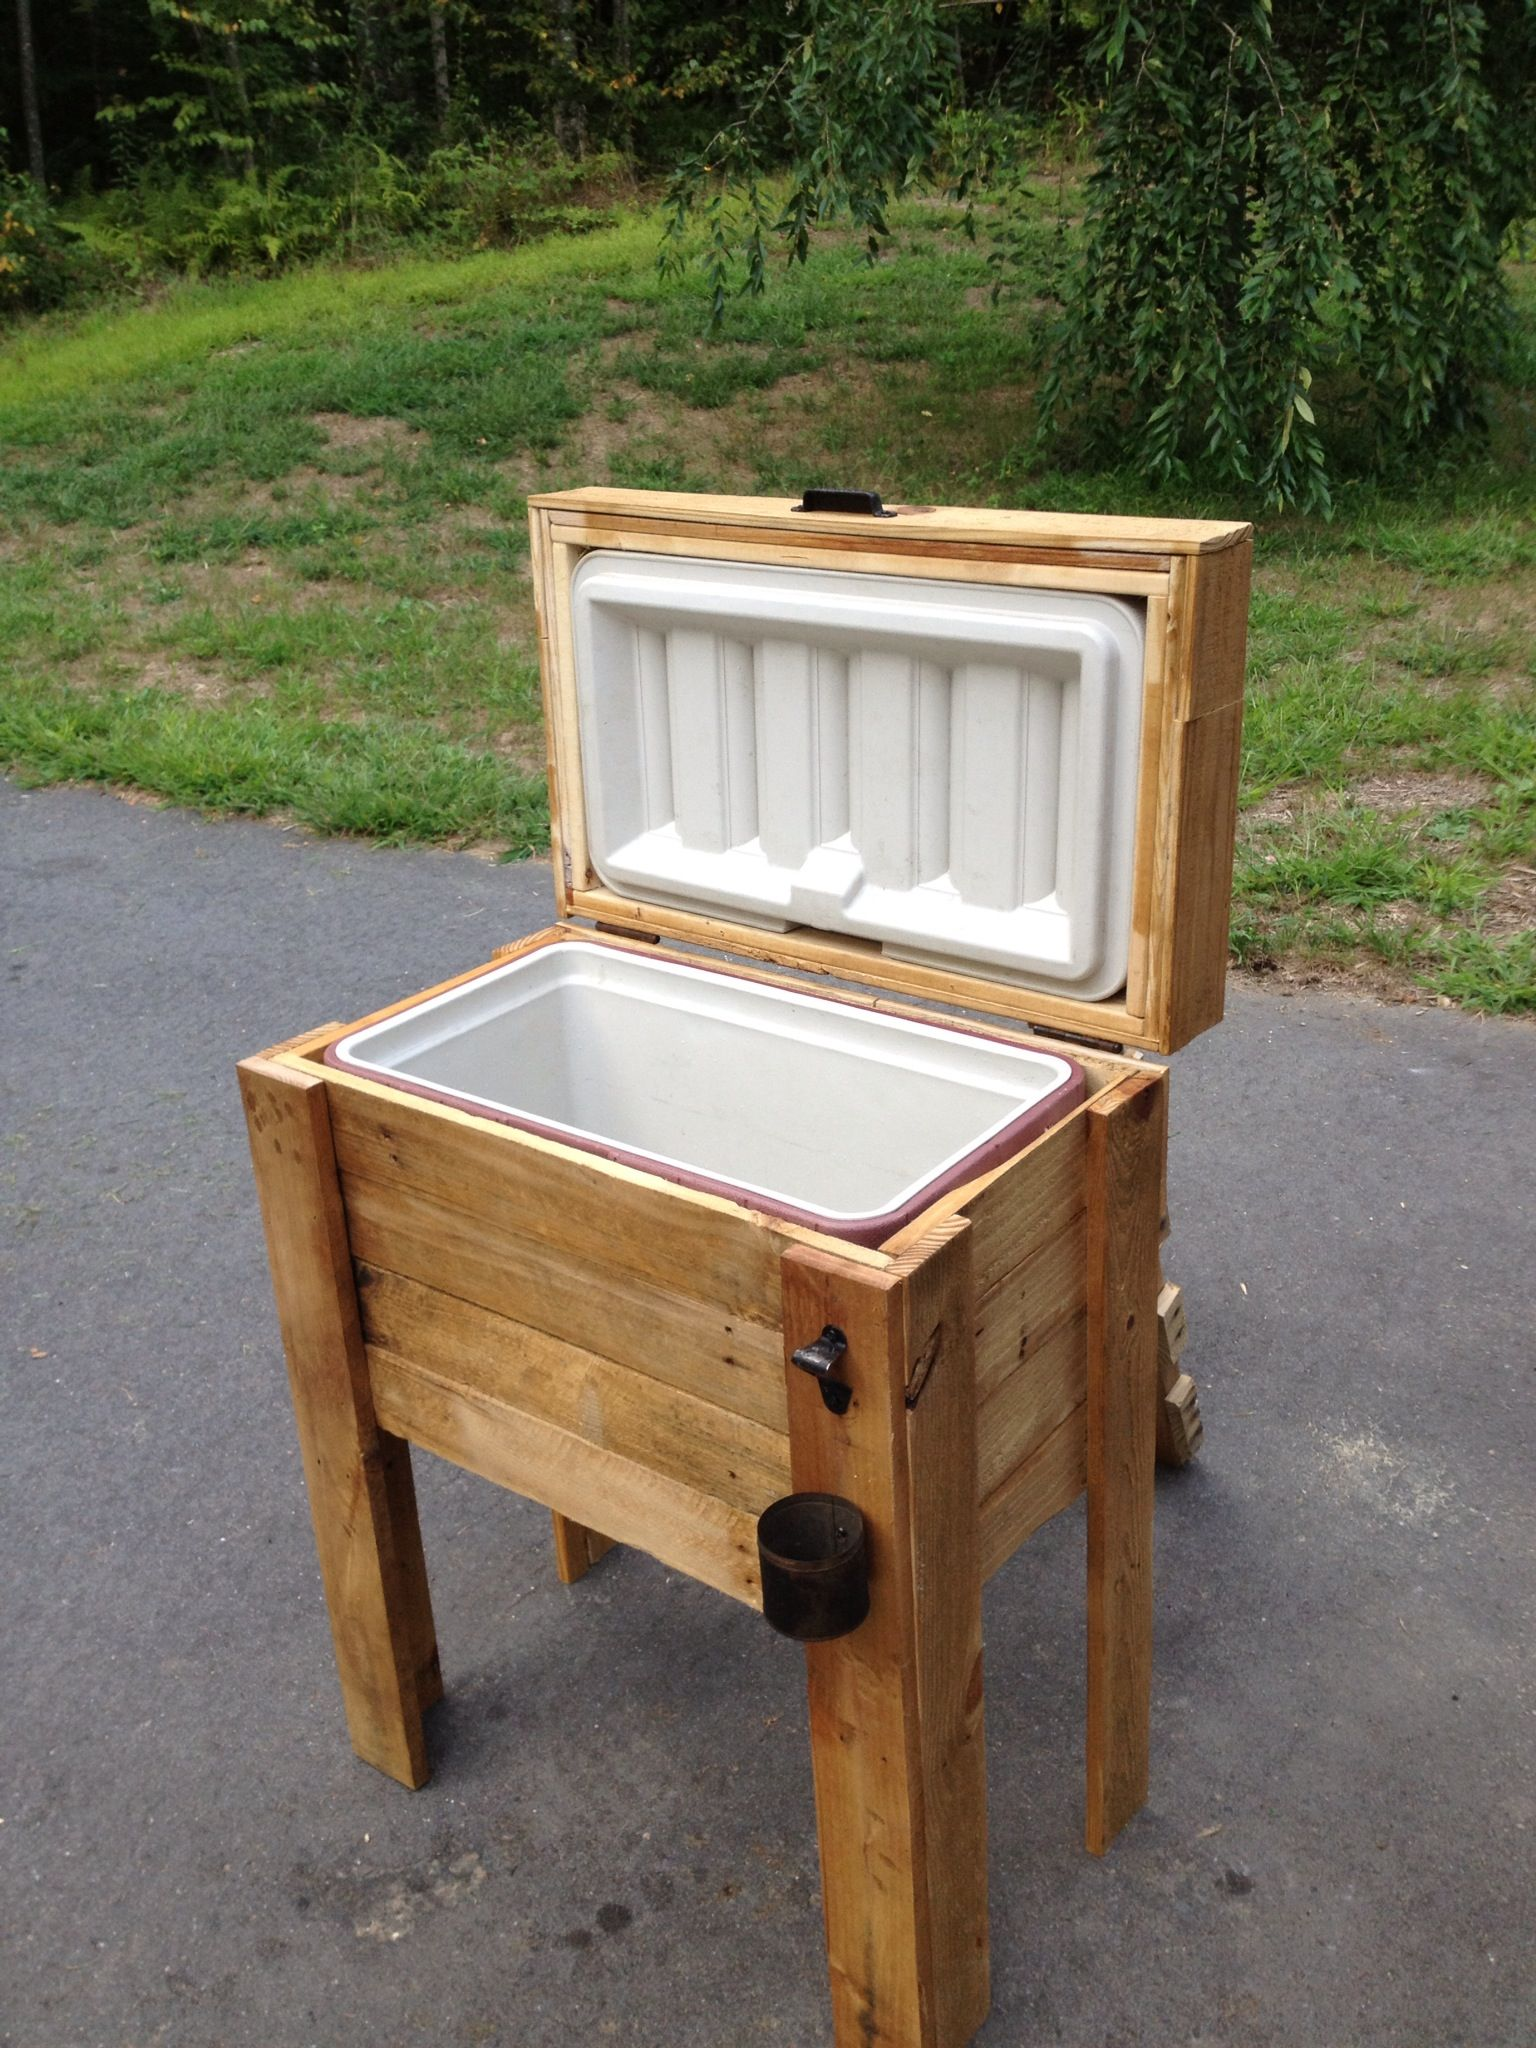 Pin By Kimberly Benjamin On For The Home Wooden Cooler Wooden Ice Chest Patio Cooler